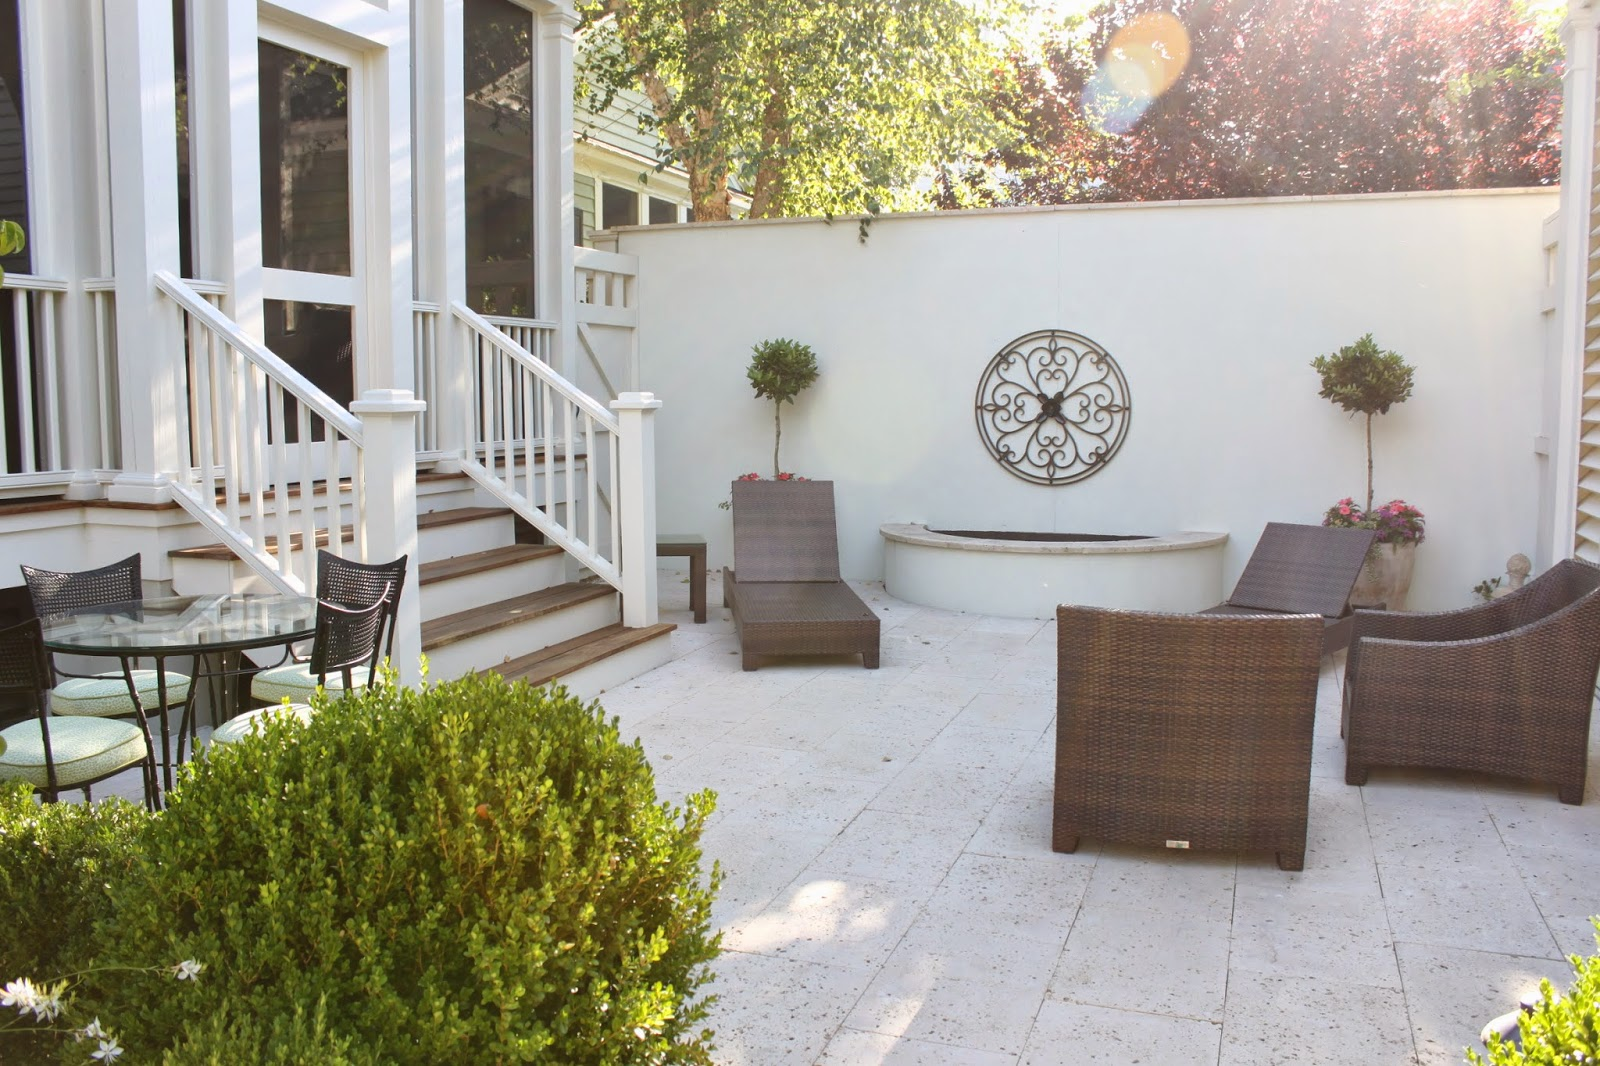 ReStructured Outdoor Living - STRUCTURES BUILDING COMPANY